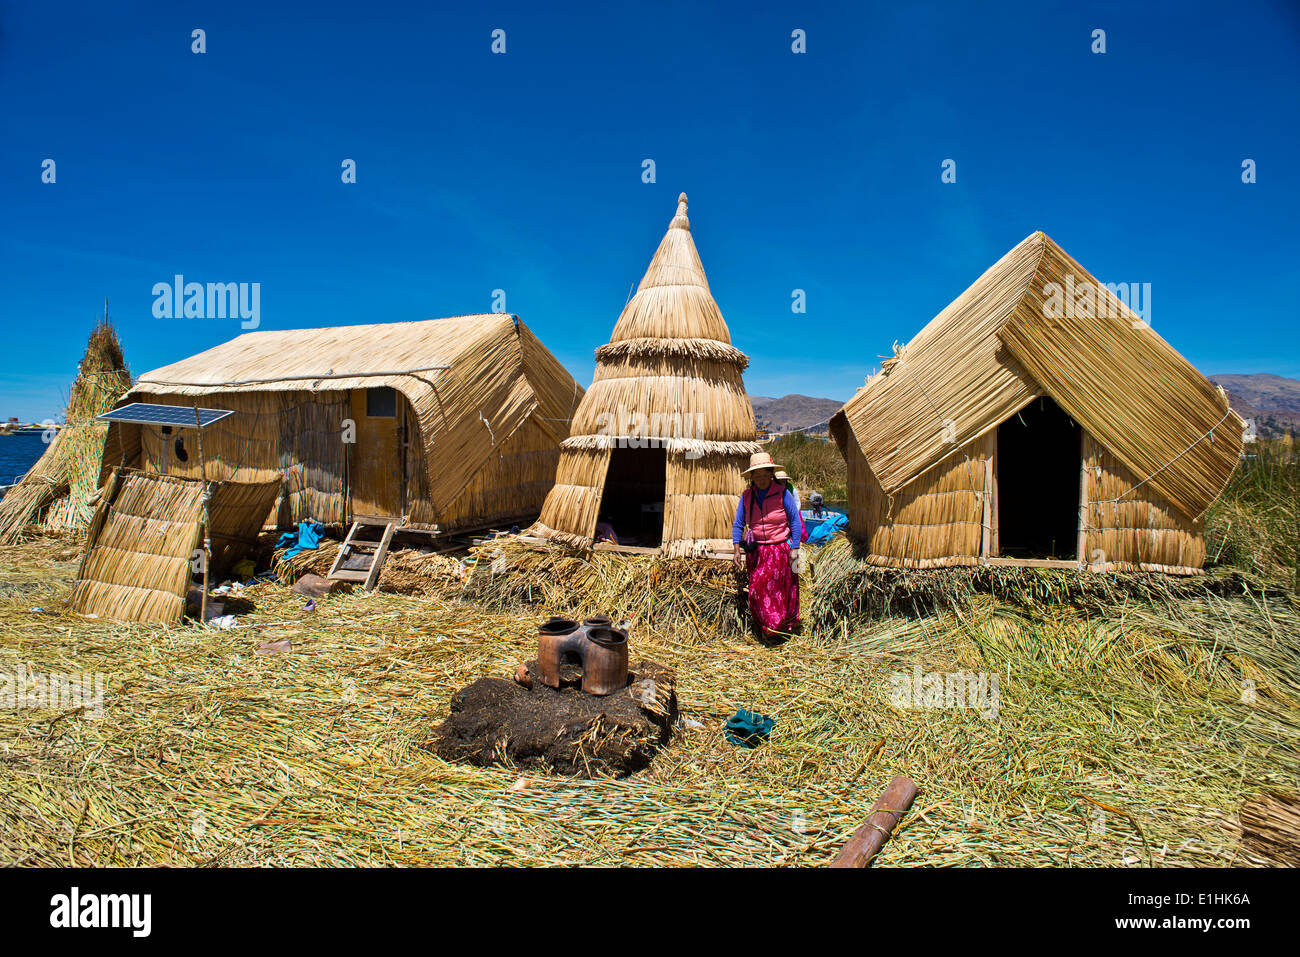 Woman of the Uro Indians in front of typical reed huts, traditional clay oven in the foreground, floating islands made of totora - Stock Image